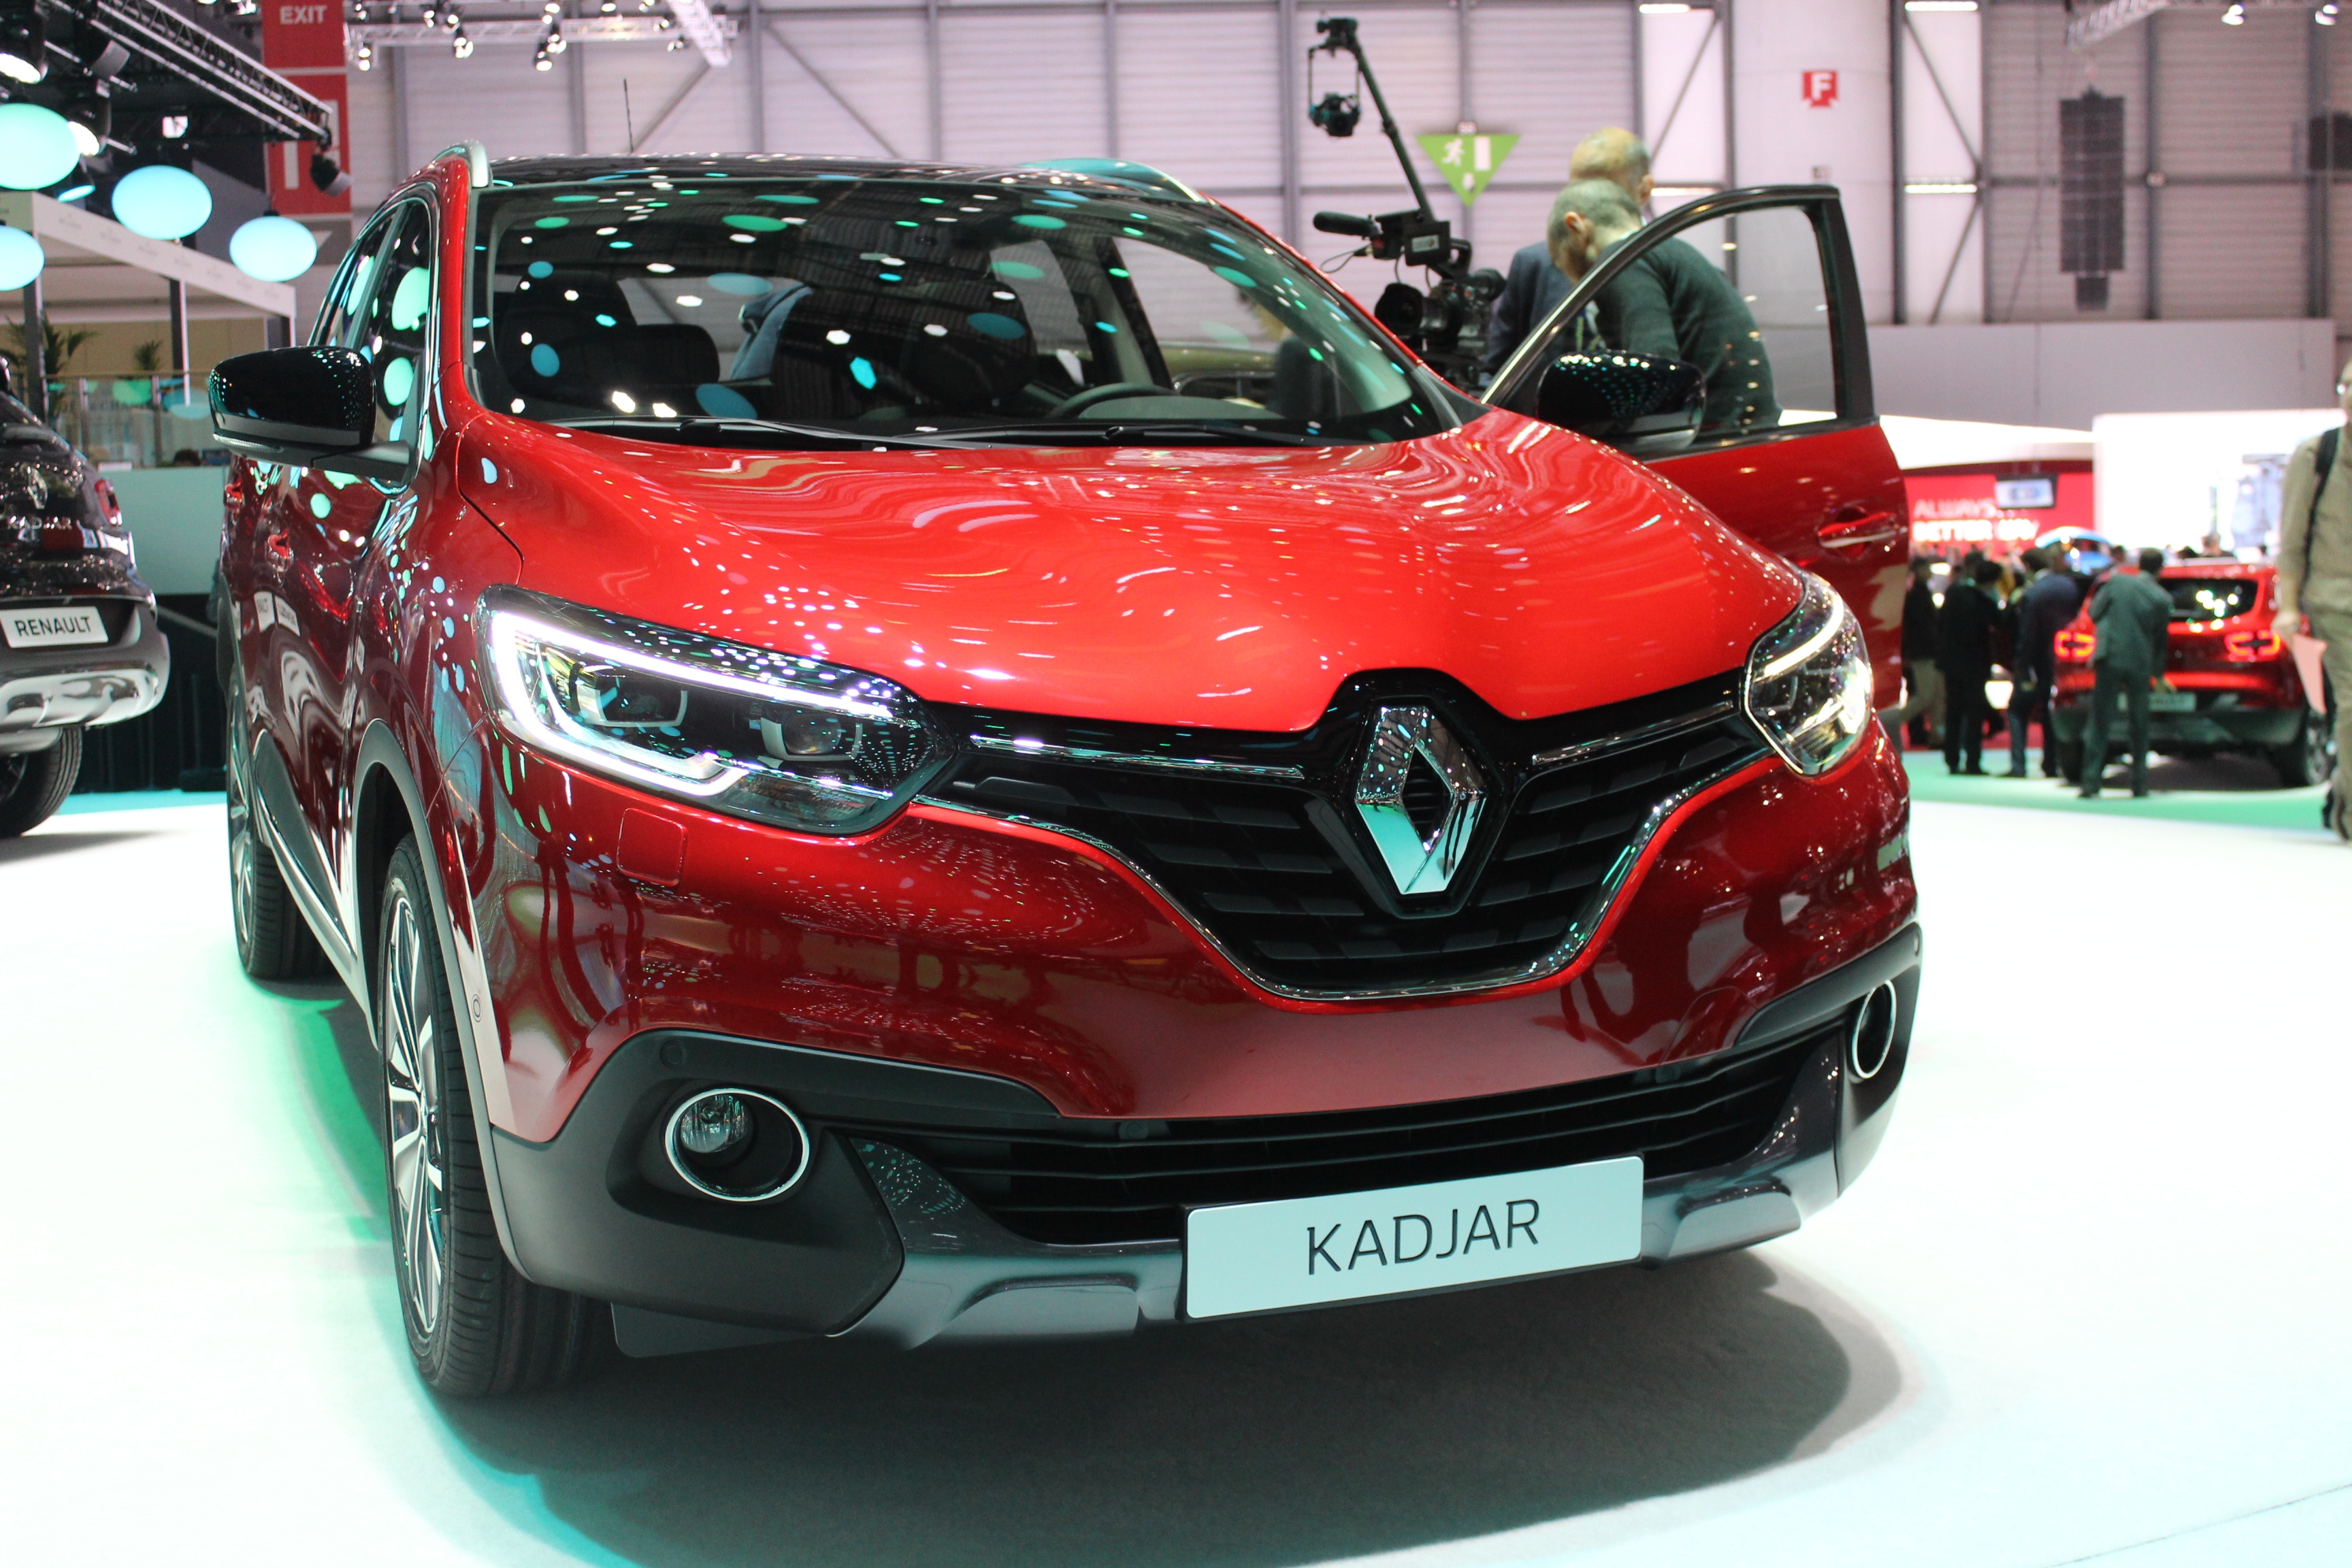 renault kadjar succ s en vue vid o en direct du salon de gen ve 2015. Black Bedroom Furniture Sets. Home Design Ideas